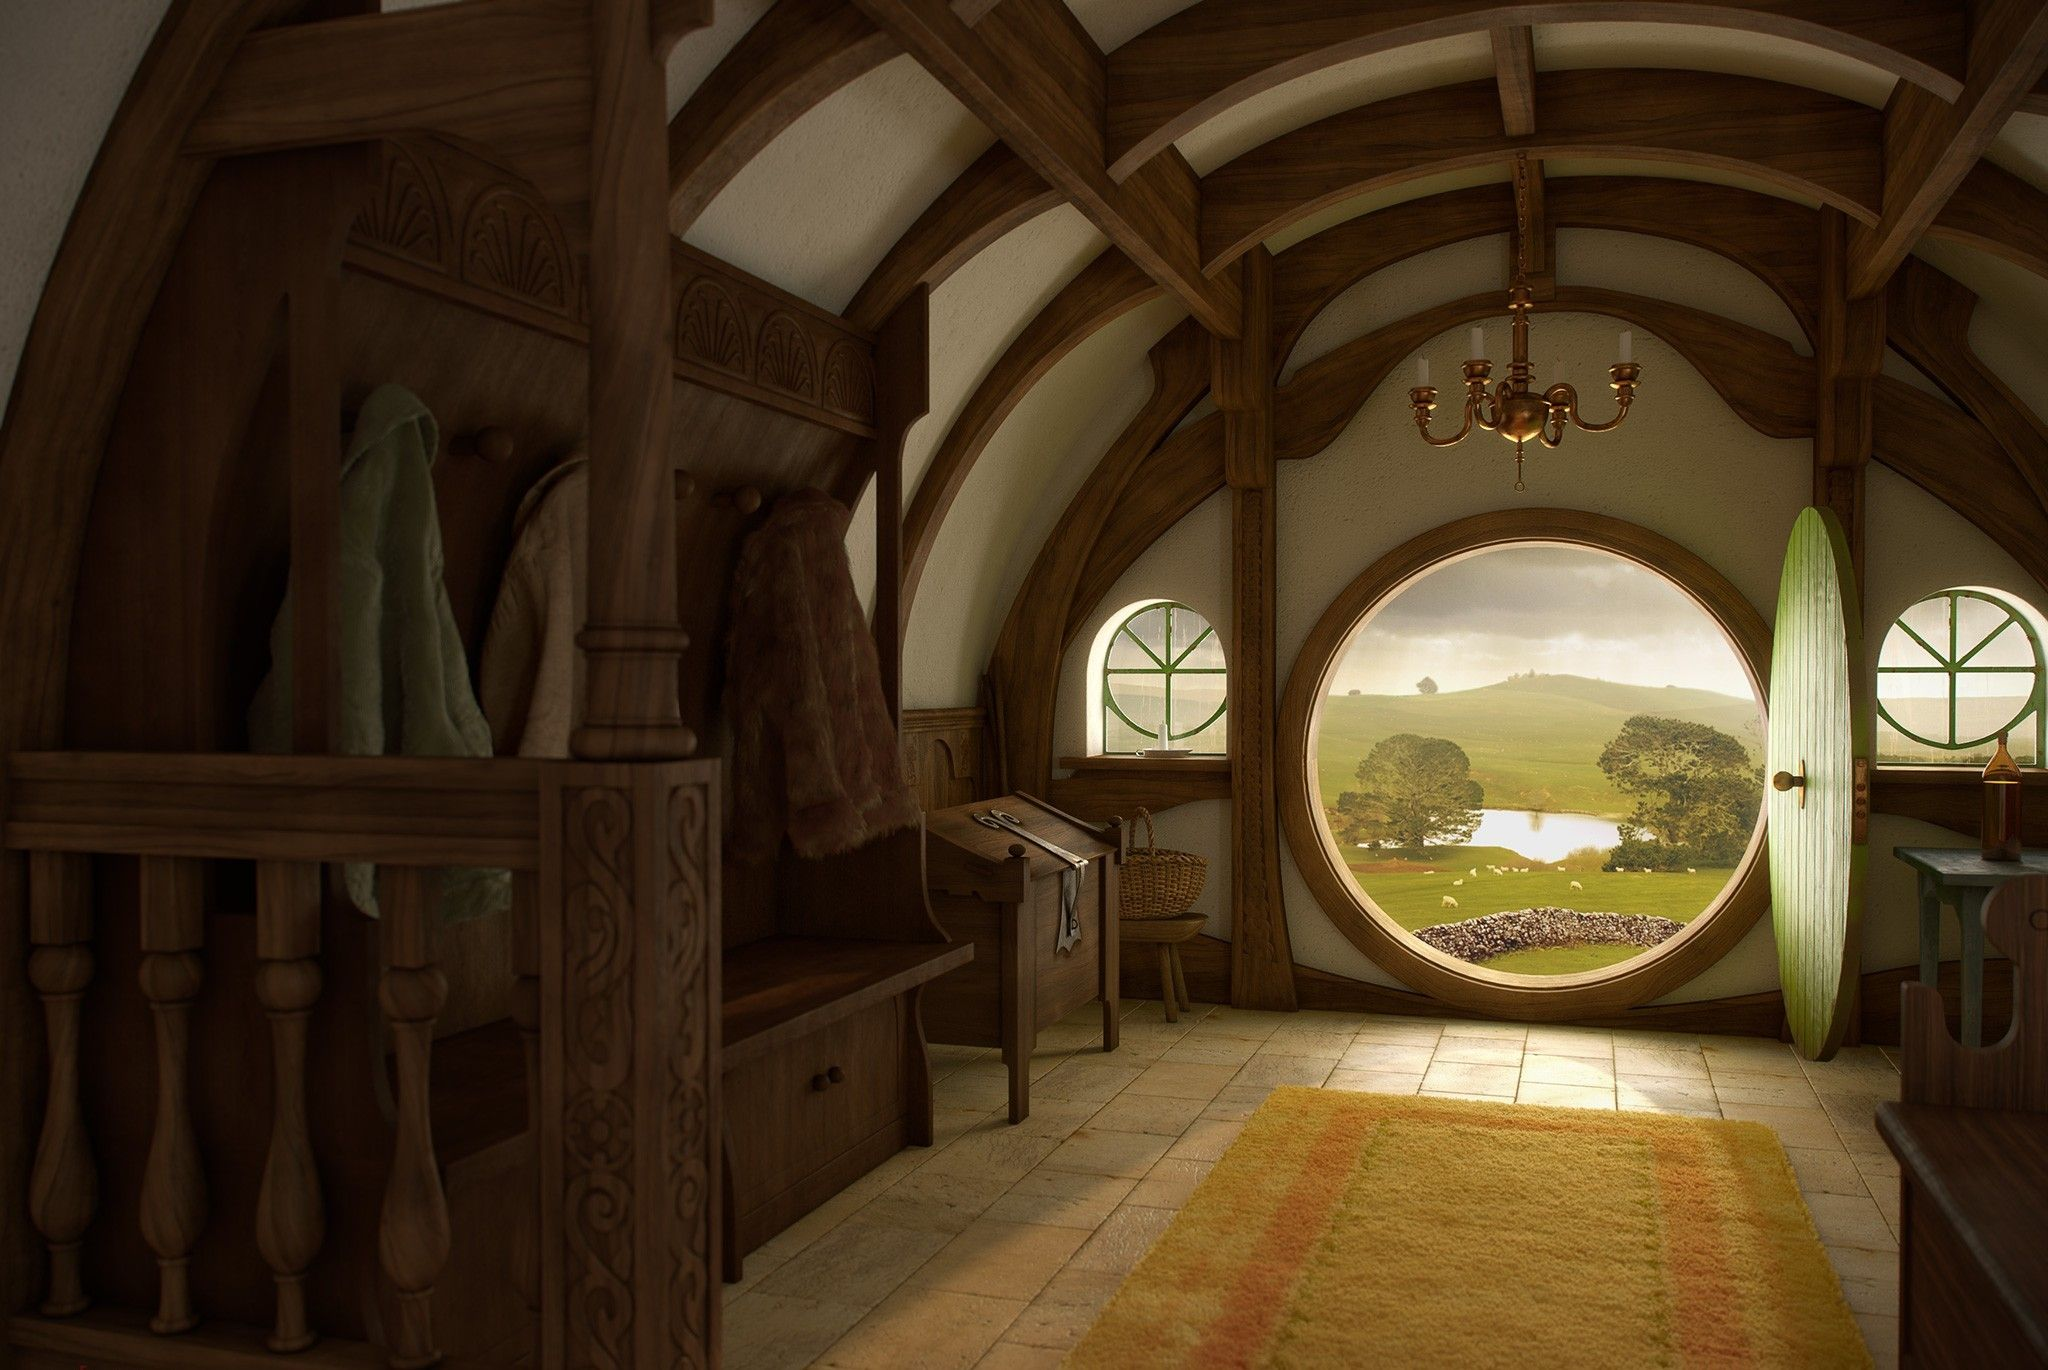 hobbit width hole home interior door wallpaper